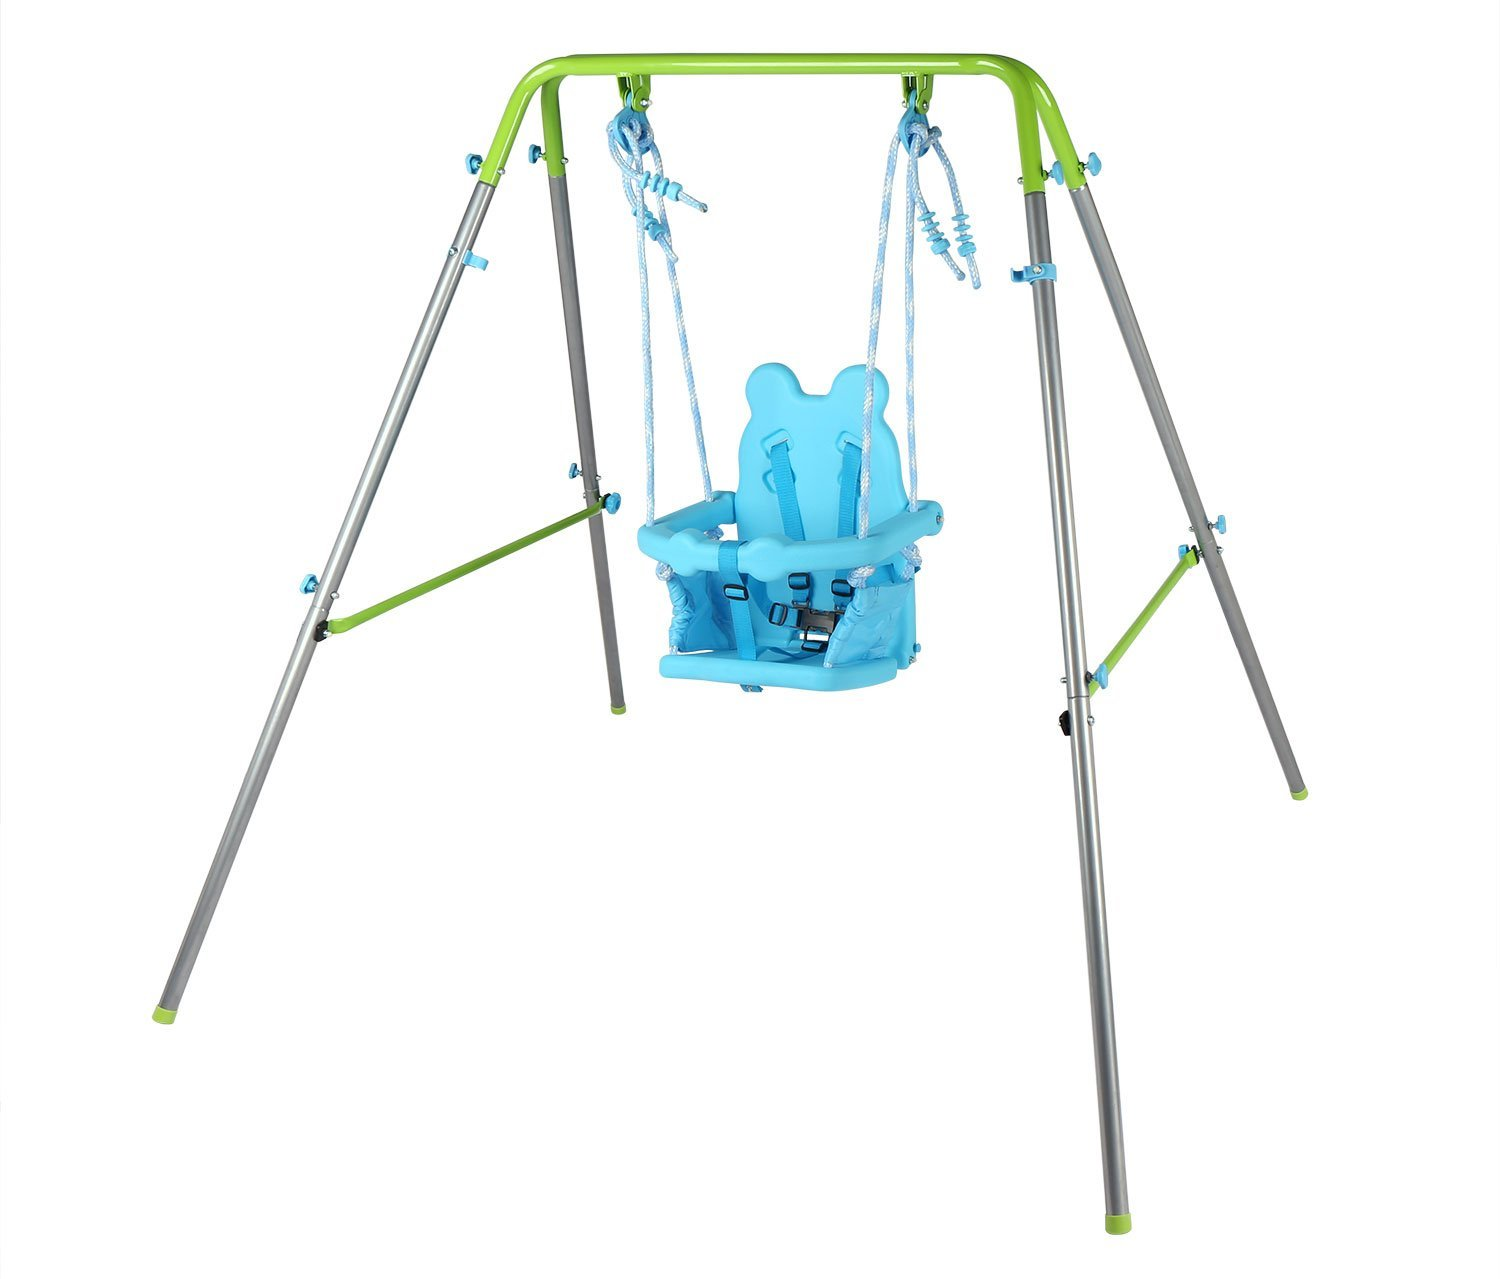 The Best portable toddler swing - Our pick